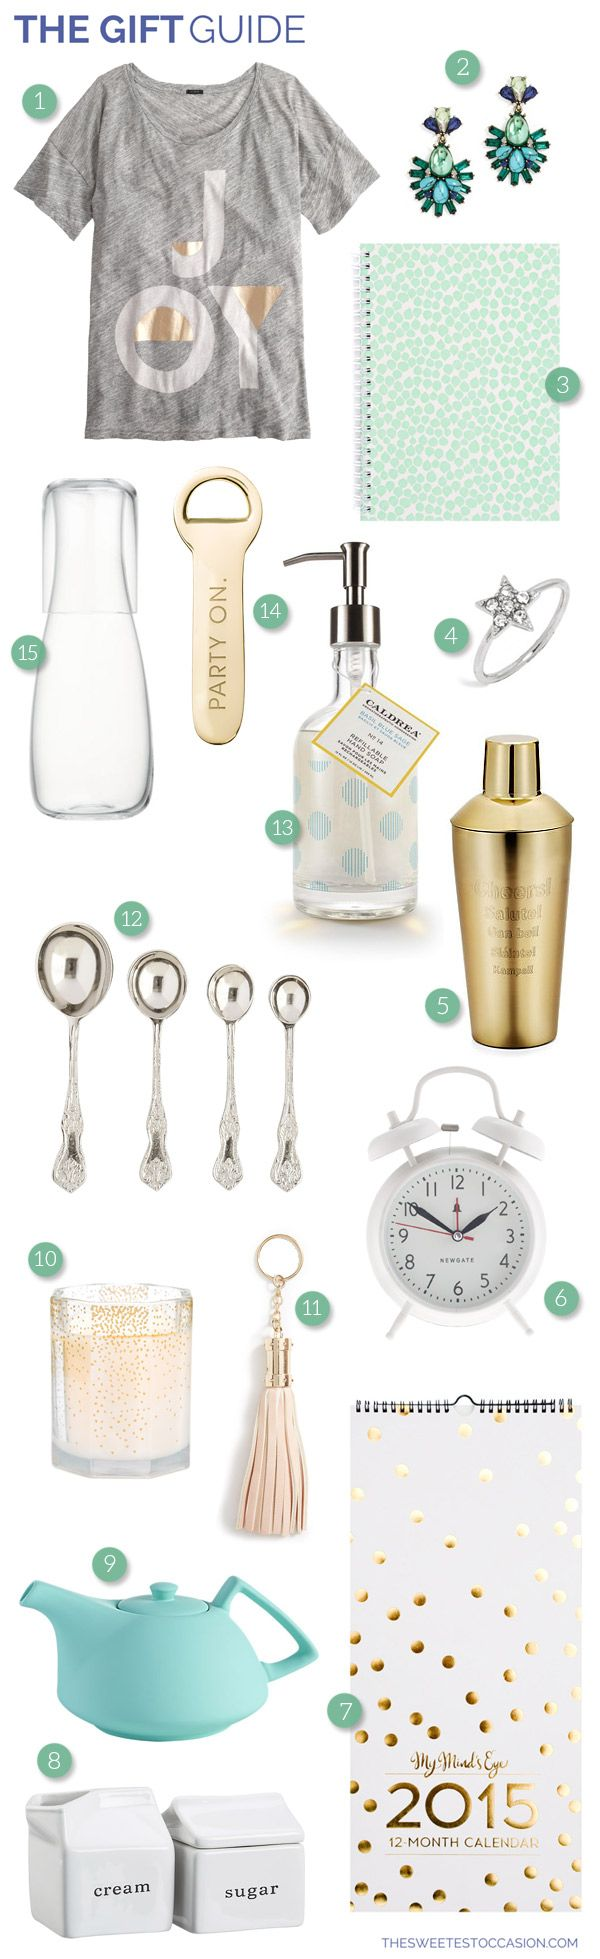 The Gift Guide: Hostess Gifts from @cydconverse